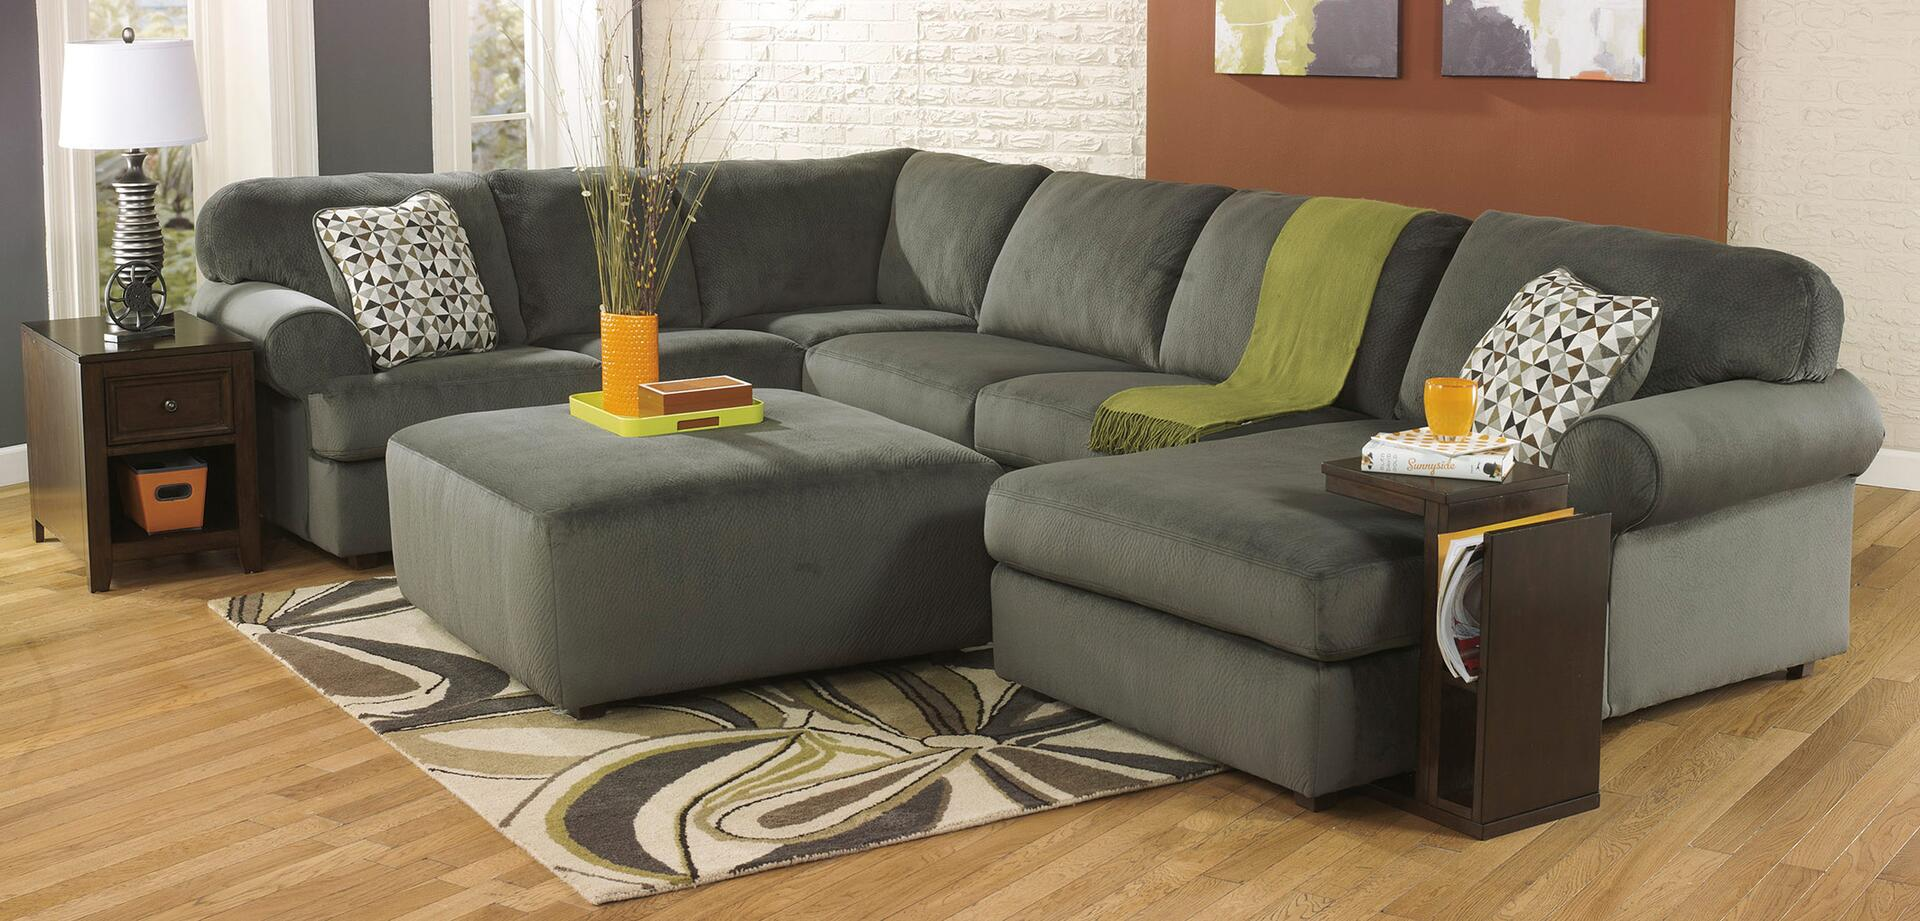 ... Signature Design by Ashley Jessa Place Sectional Sofa with Optional Ottoman and Accessories ... : jessa place sectional pewter - Sectionals, Sofas & Couches